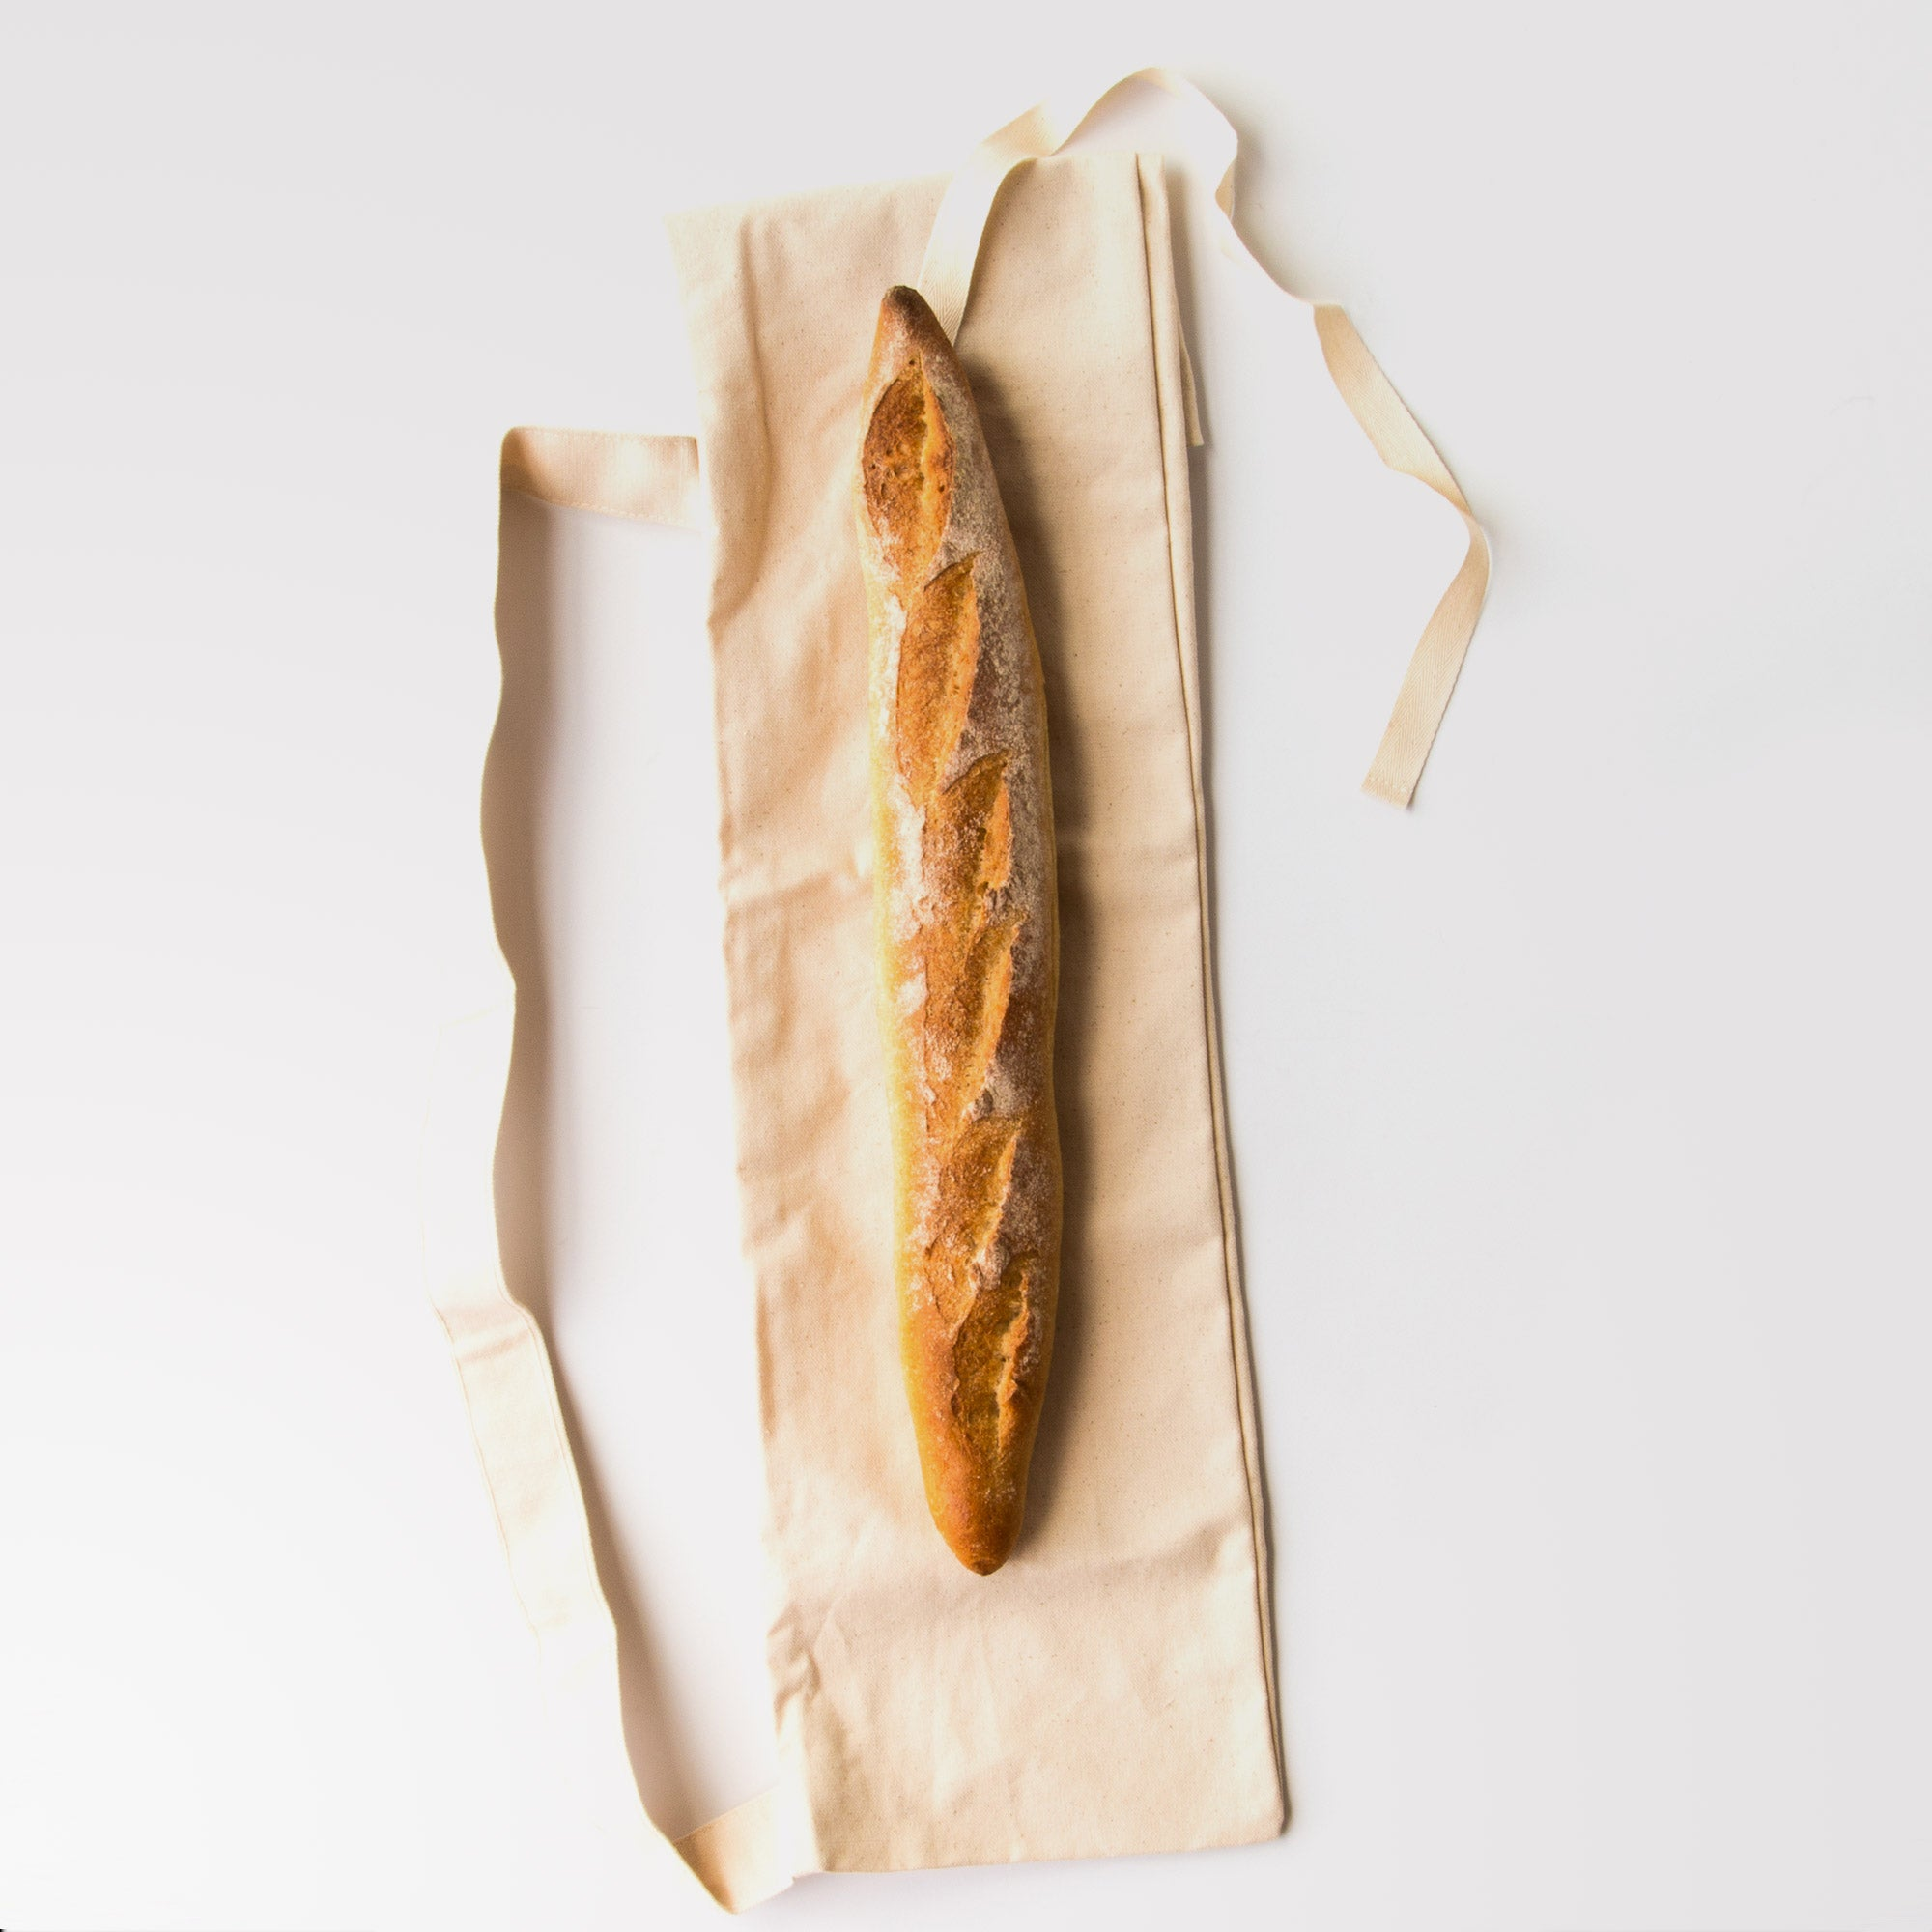 Reusable Baguette Bag - Zero Waste 100% Cotton Bread Bag - Sold by Chic & Basta